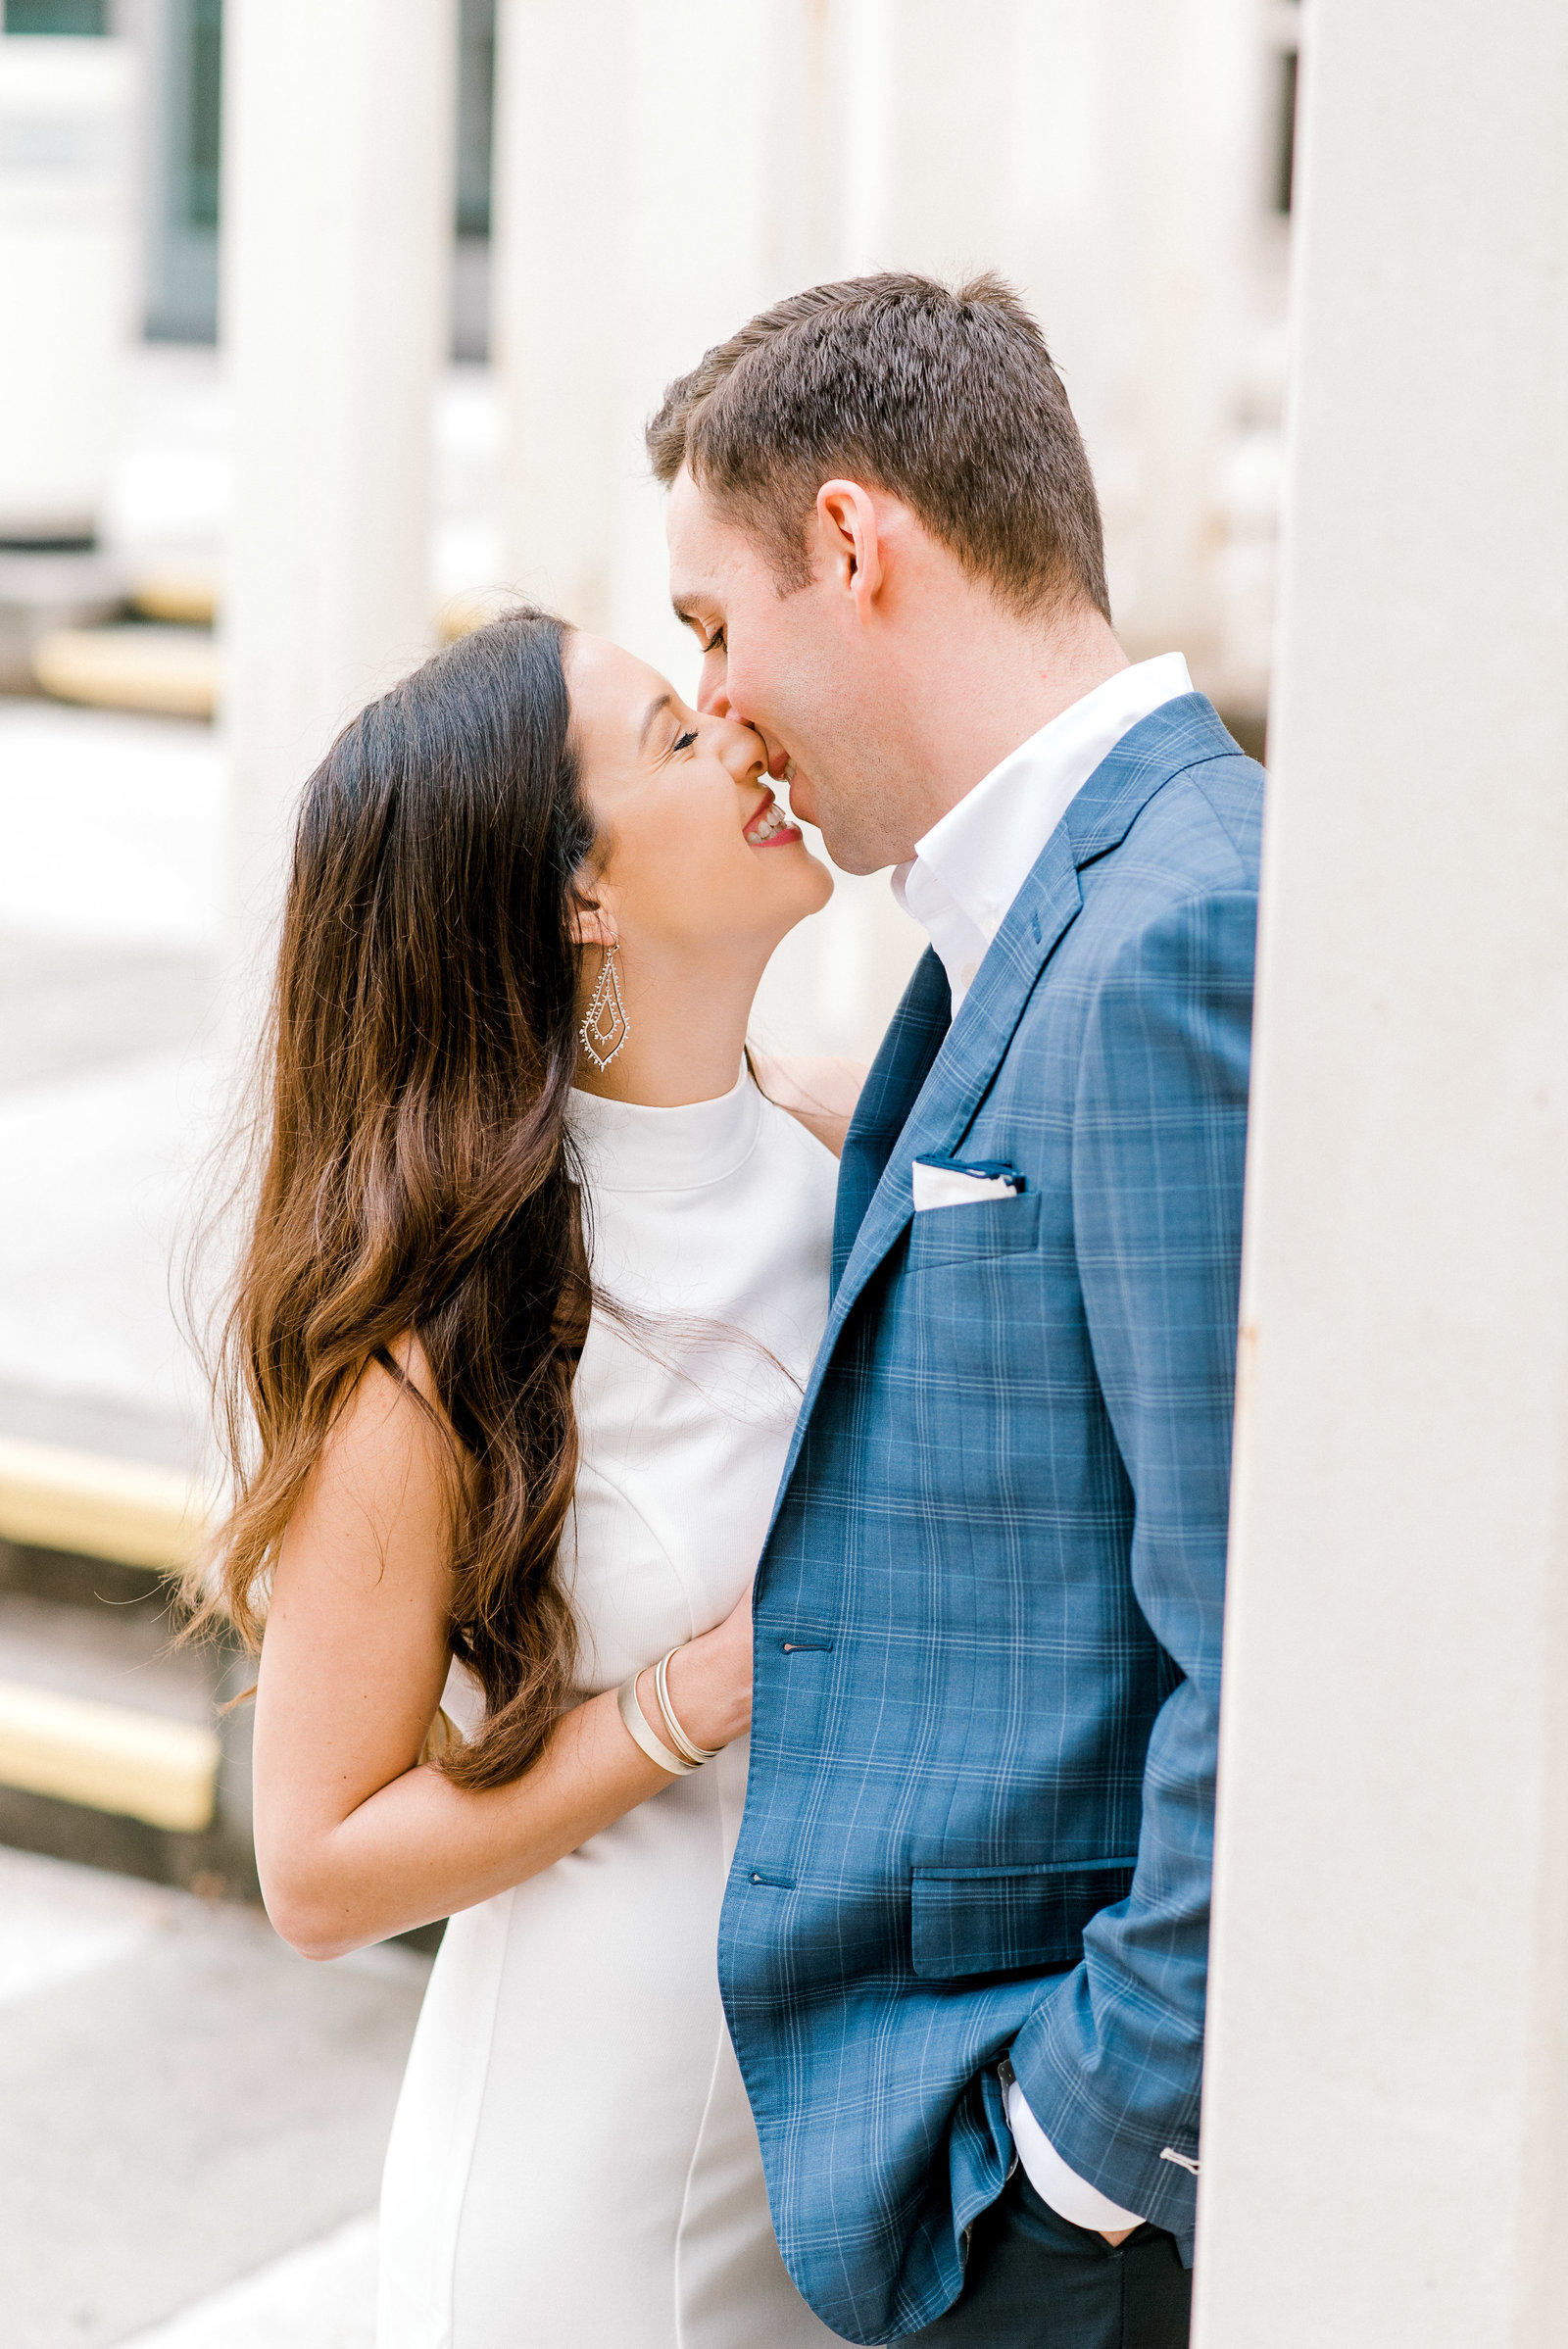 charlotte-engagement-candid-photographer-ballantyne-hotel-uptown-clt-weddings-bride-style-me-pretty-session-wedding-fine-art-bright-and-airy-film-photographer-alyssa-frost-photography-7